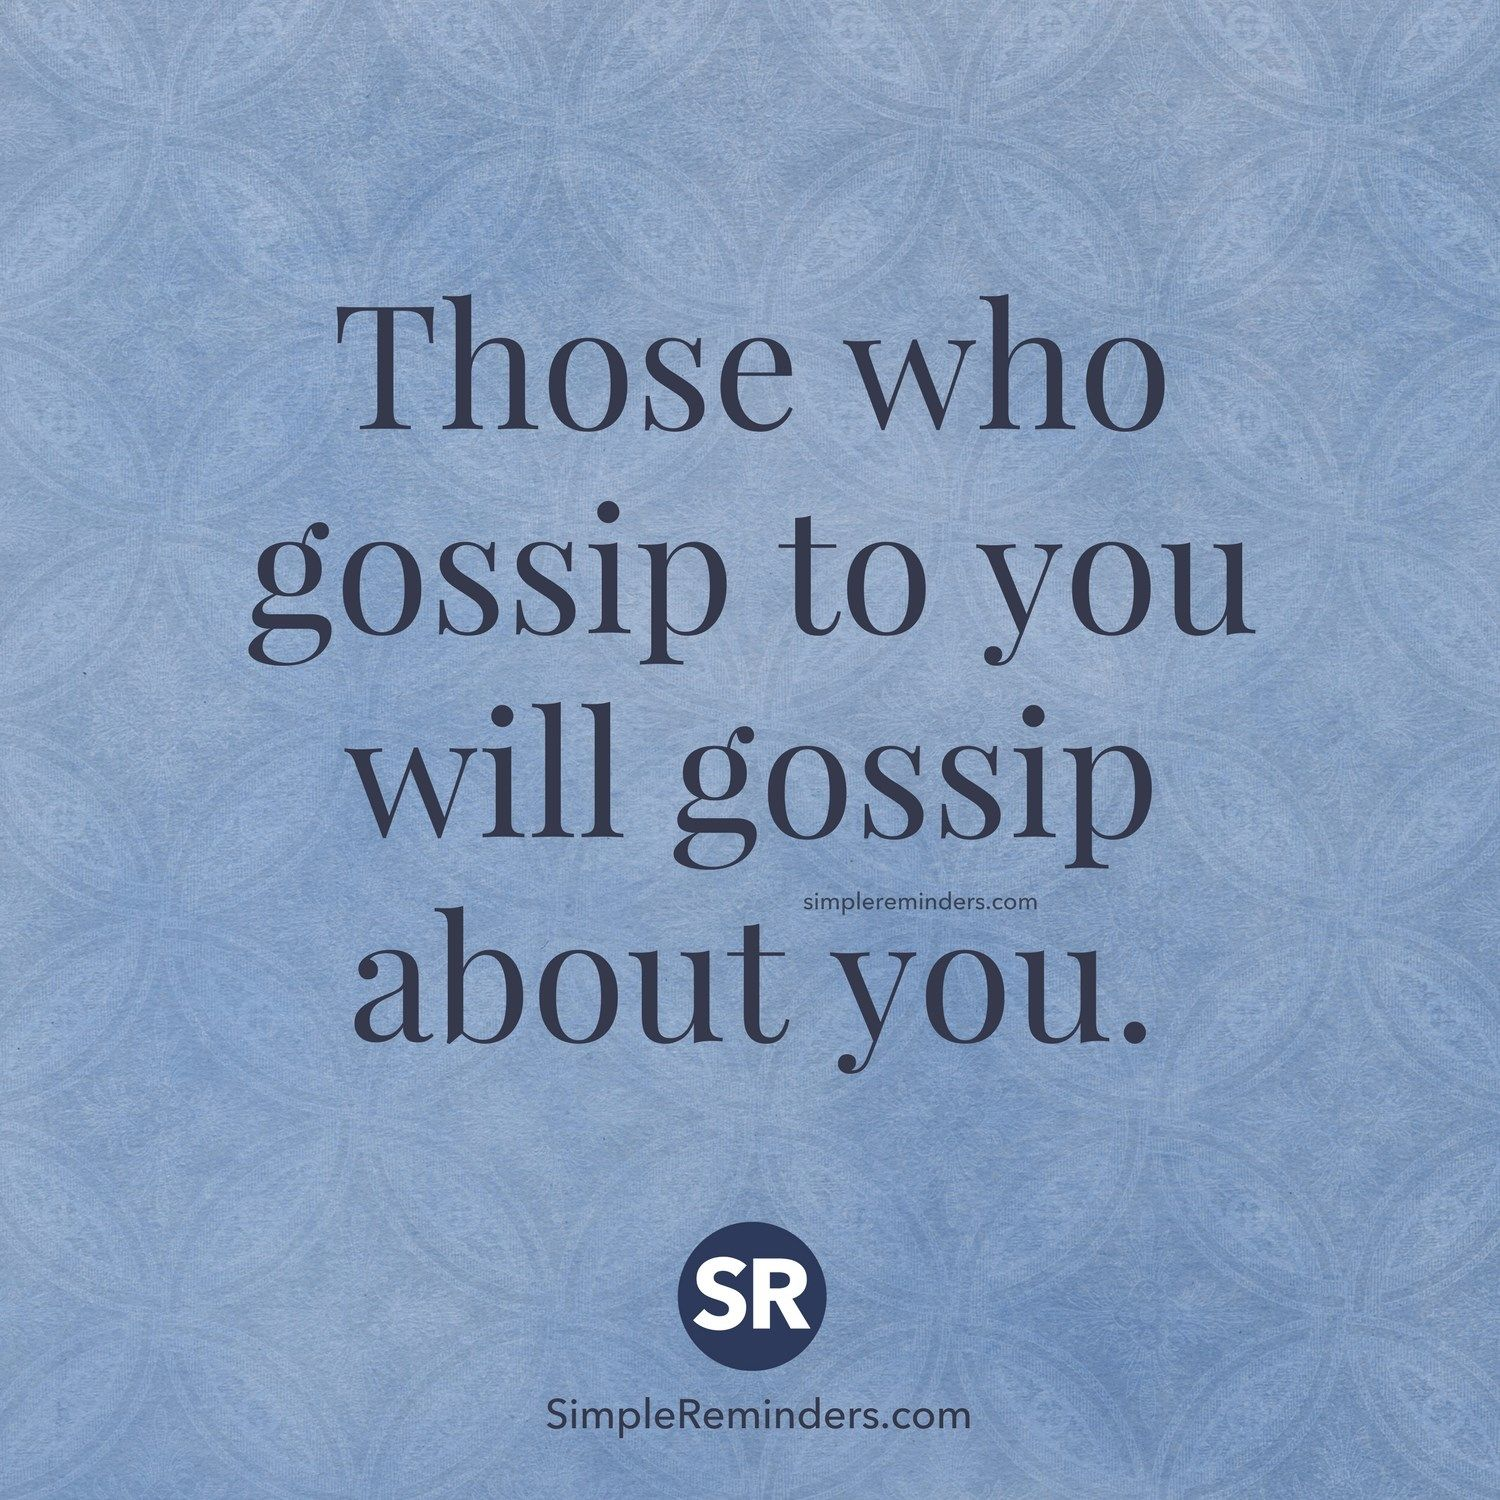 Those Who Gossip To You Will Gossip About You.